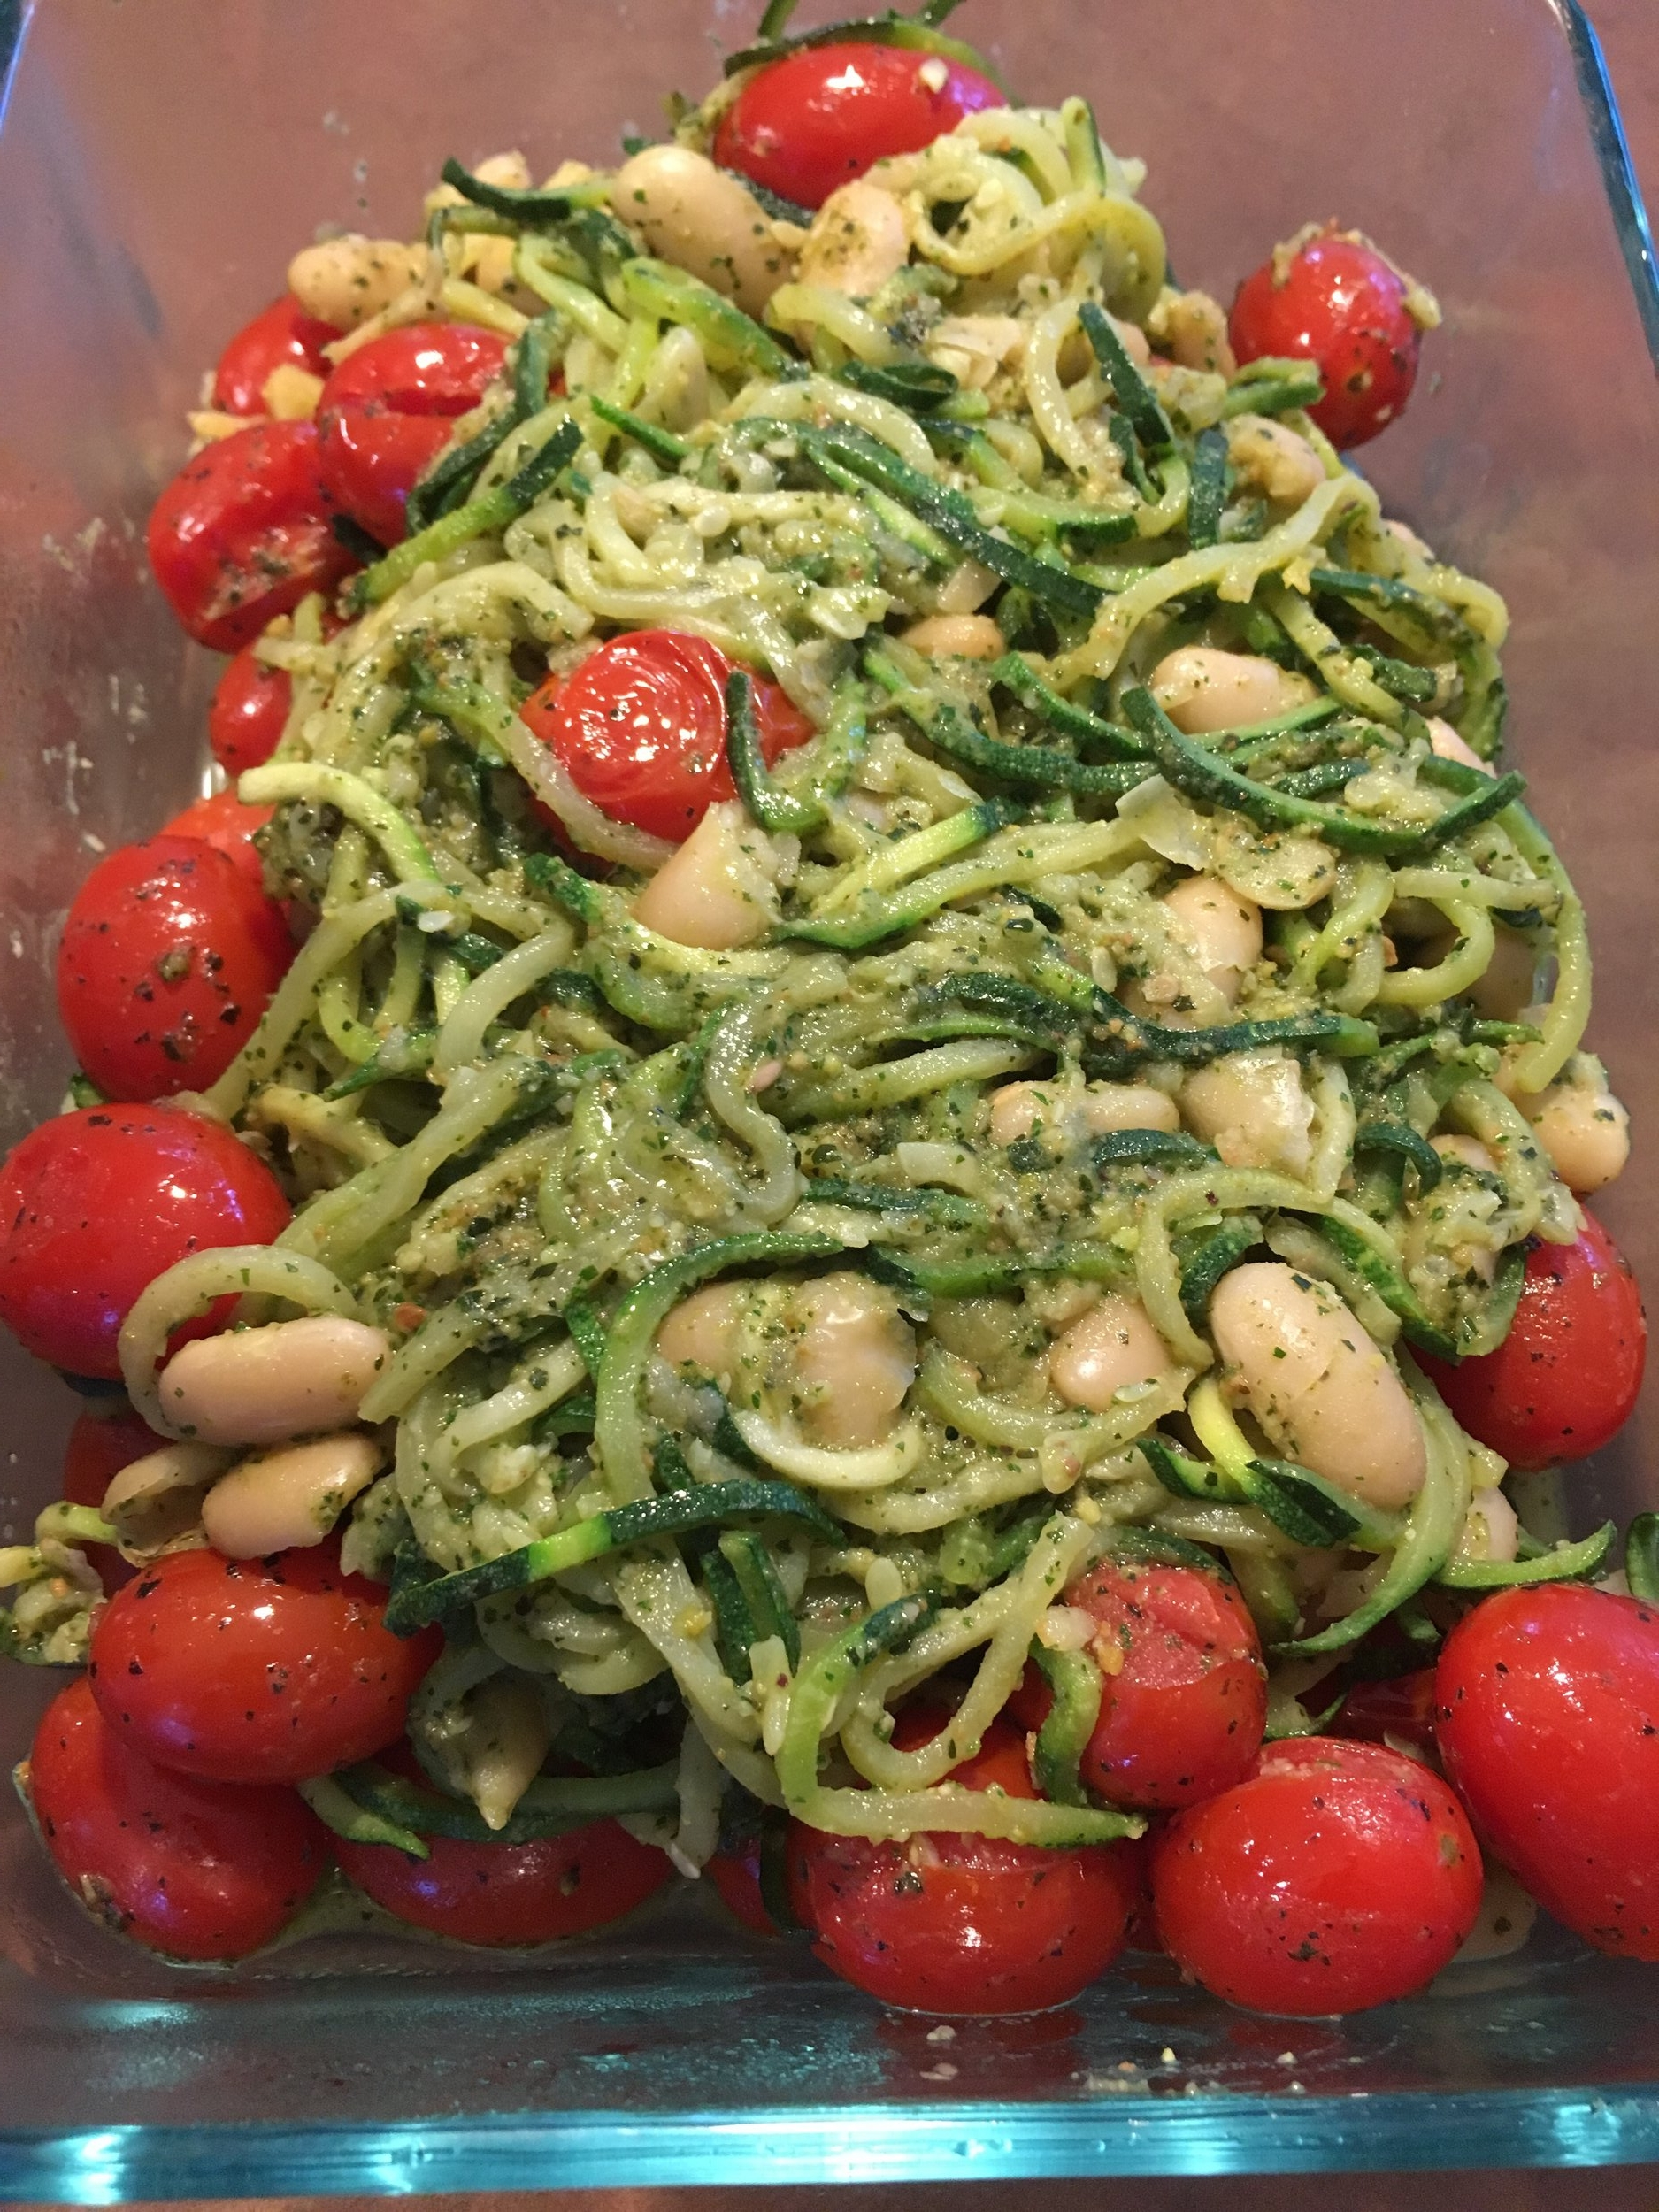 squash noodles with cherrytomatoes.jpg